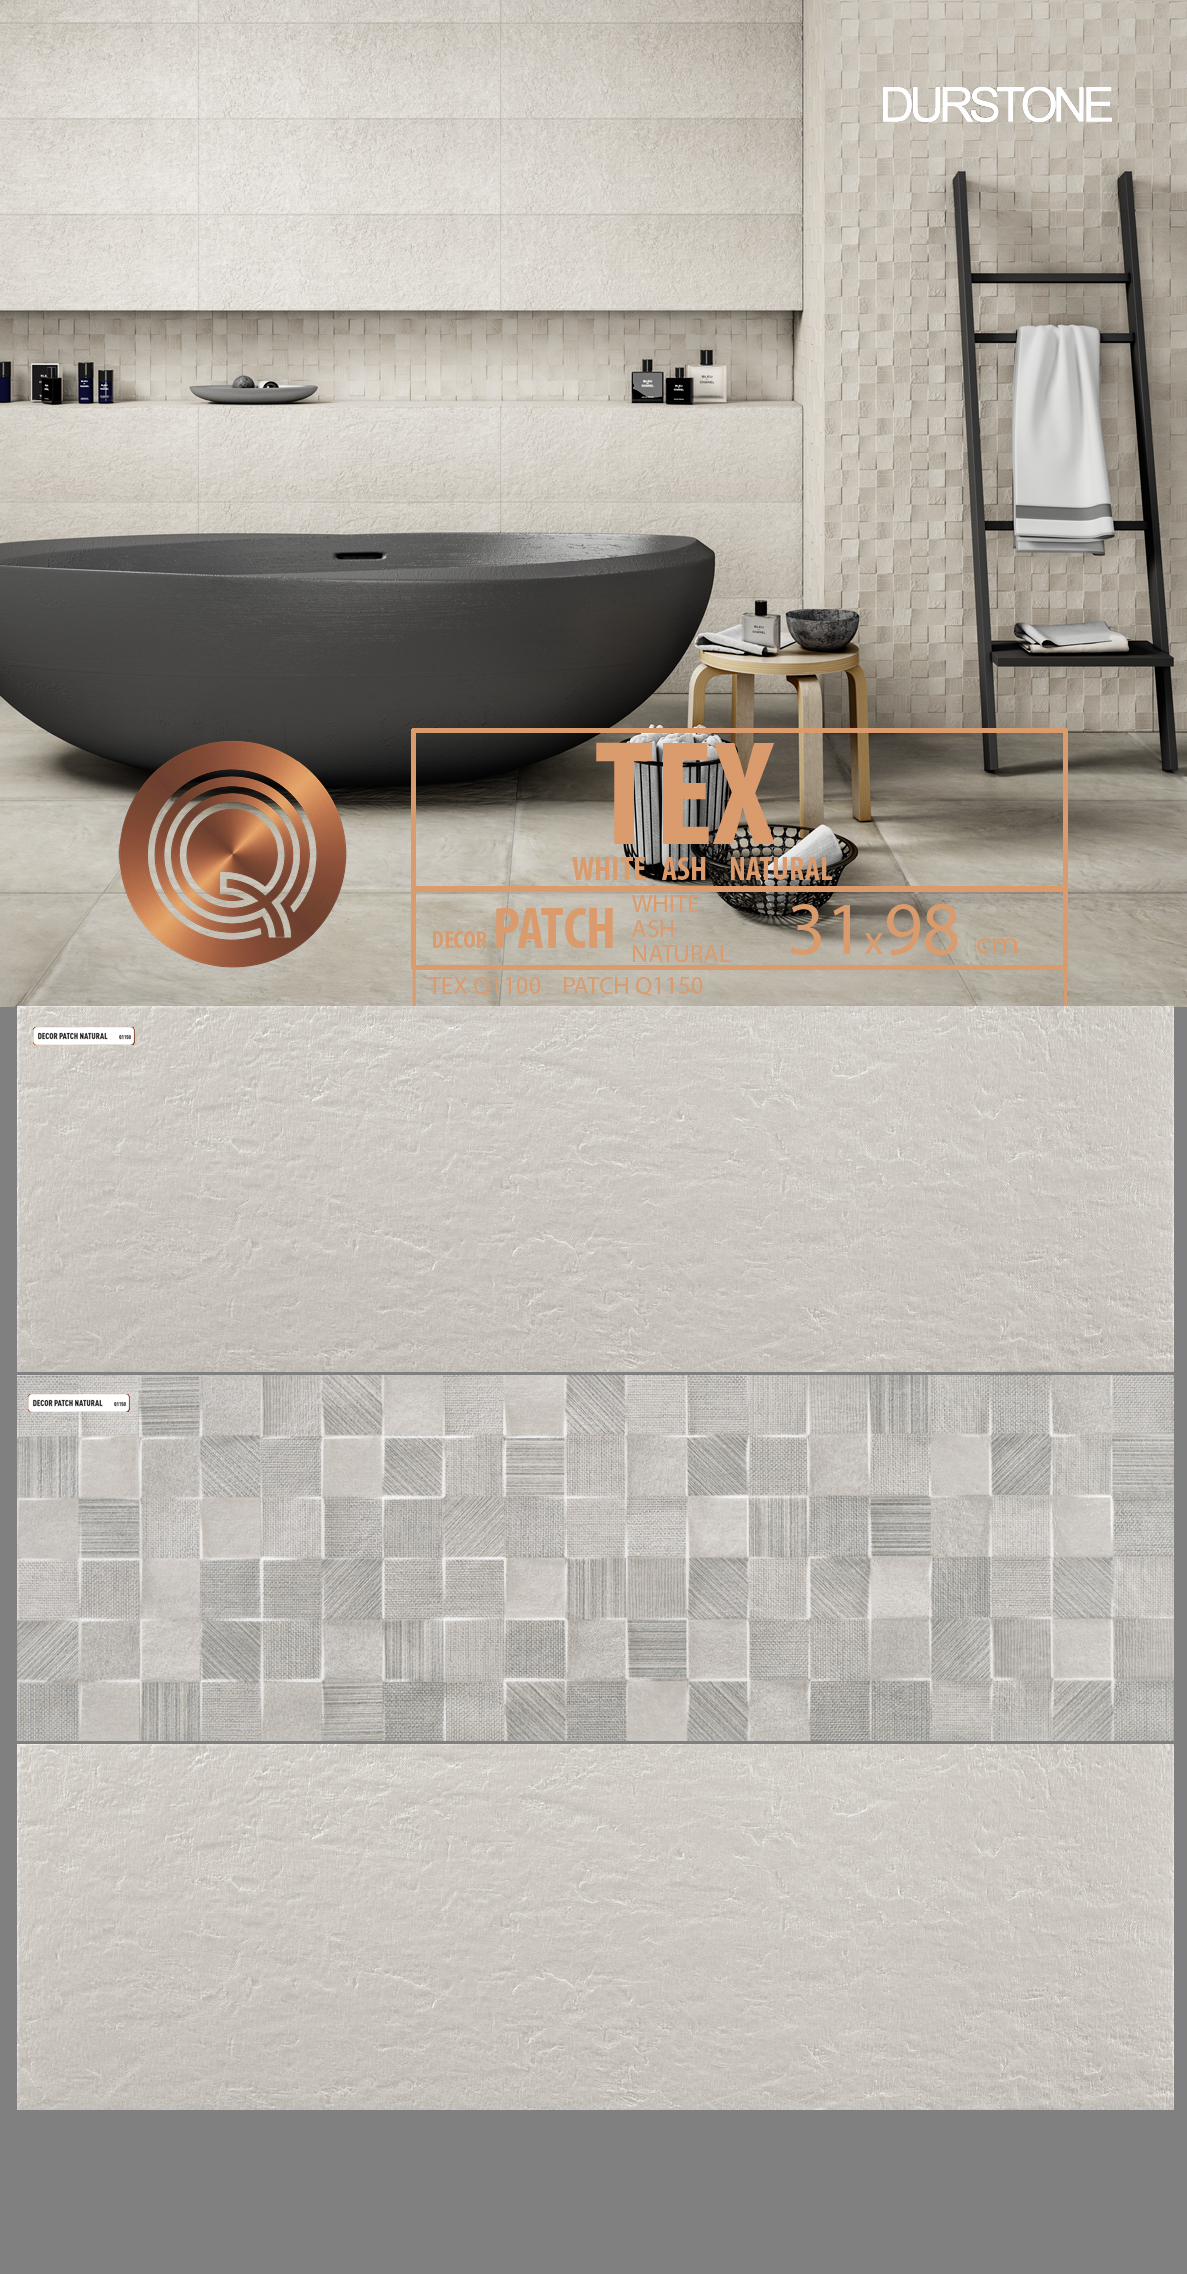 5272 RVM PANEL MIX TEX PATCH ASH Cod. 5272